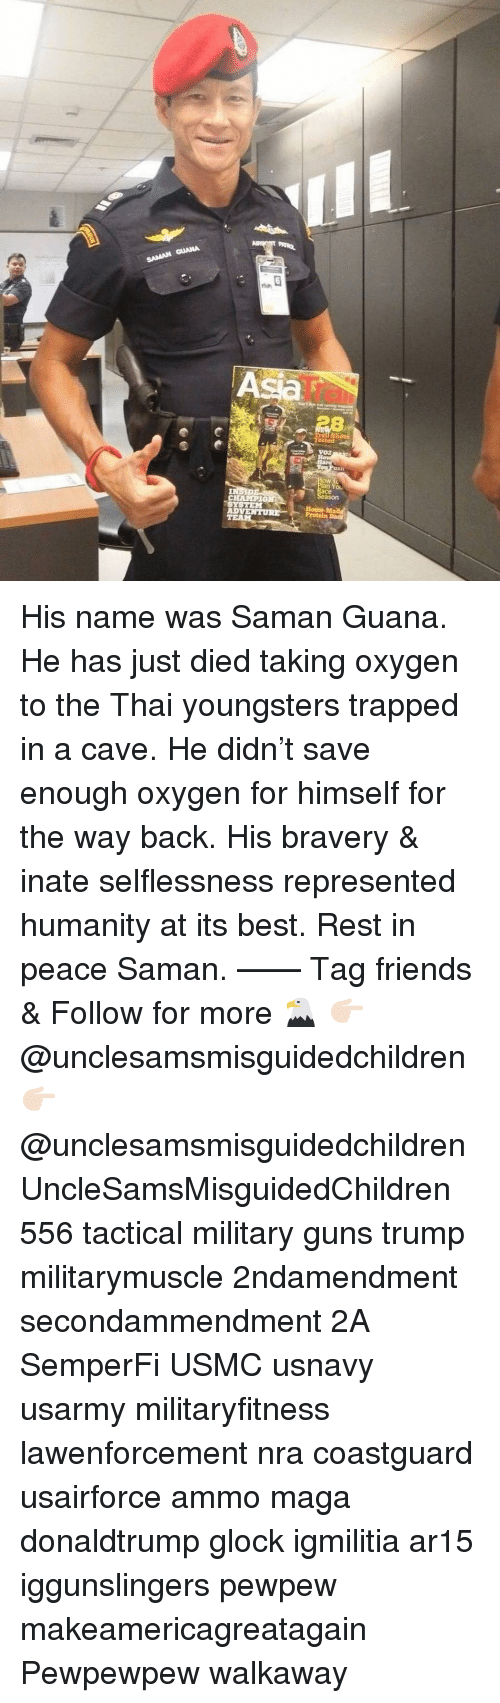 Ar15: An  IT  VOZ  n You  ace  ason  CHAMPIO  AD His name was Saman Guana. He has just died taking oxygen to the Thai youngsters trapped in a cave. He didn't save enough oxygen for himself for the way back. His bravery & inate selflessness represented humanity at its best. Rest in peace Saman. —— Tag friends & Follow for more 🦅 👉🏻 @unclesamsmisguidedchildren 👉🏻 @unclesamsmisguidedchildren UncleSamsMisguidedChildren 556 tactical military guns trump militarymuscle 2ndamendment secondammendment 2A SemperFi USMC usnavy usarmy militaryfitness lawenforcement nra coastguard usairforce ammo maga donaldtrump glock igmilitia ar15 iggunslingers pewpew makeamericagreatagain Pewpewpew walkaway